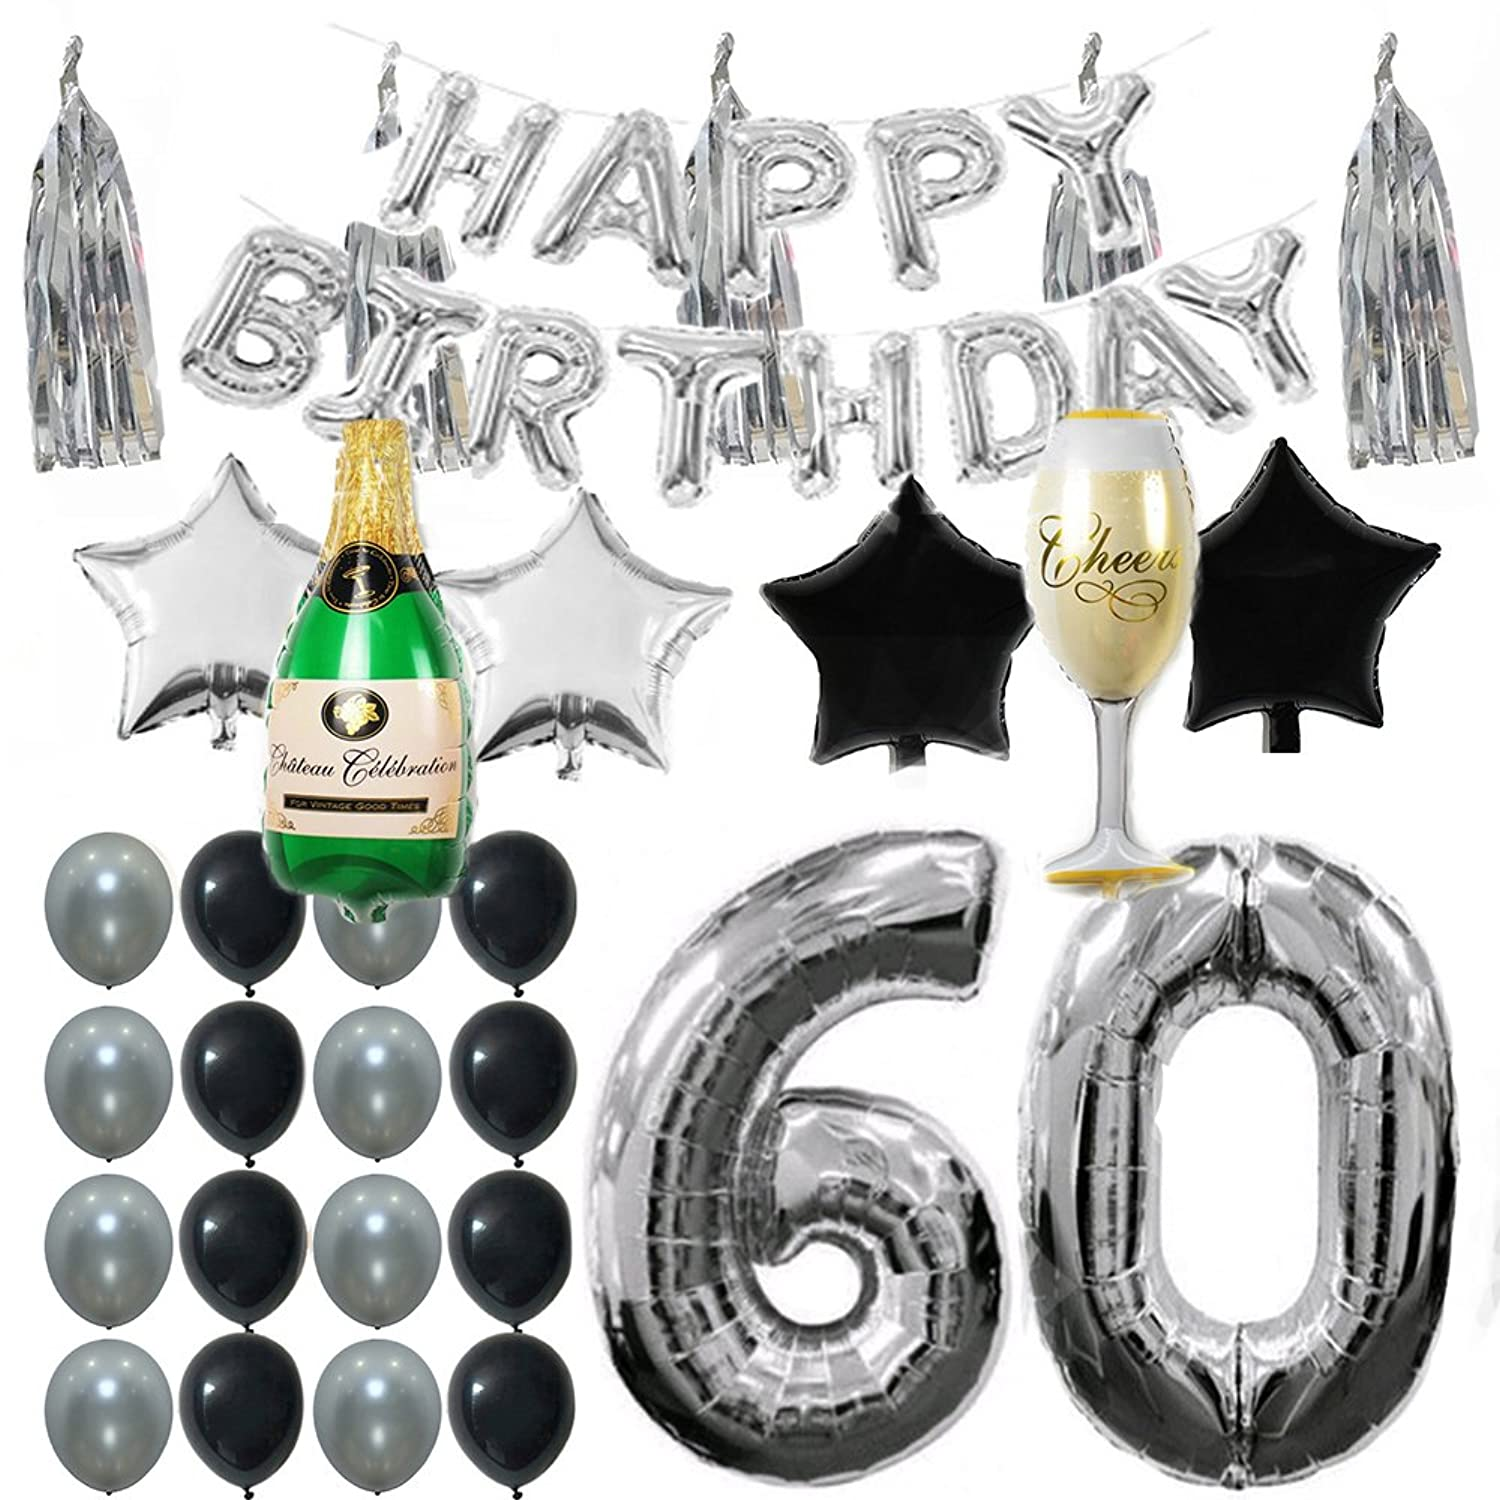 Ezing 60th B-Day Party Supplies Decorations Kit Pack , Silver Tone Tassel and Happy Birthday Letters with Latex & Star Foil Balloons (60th)